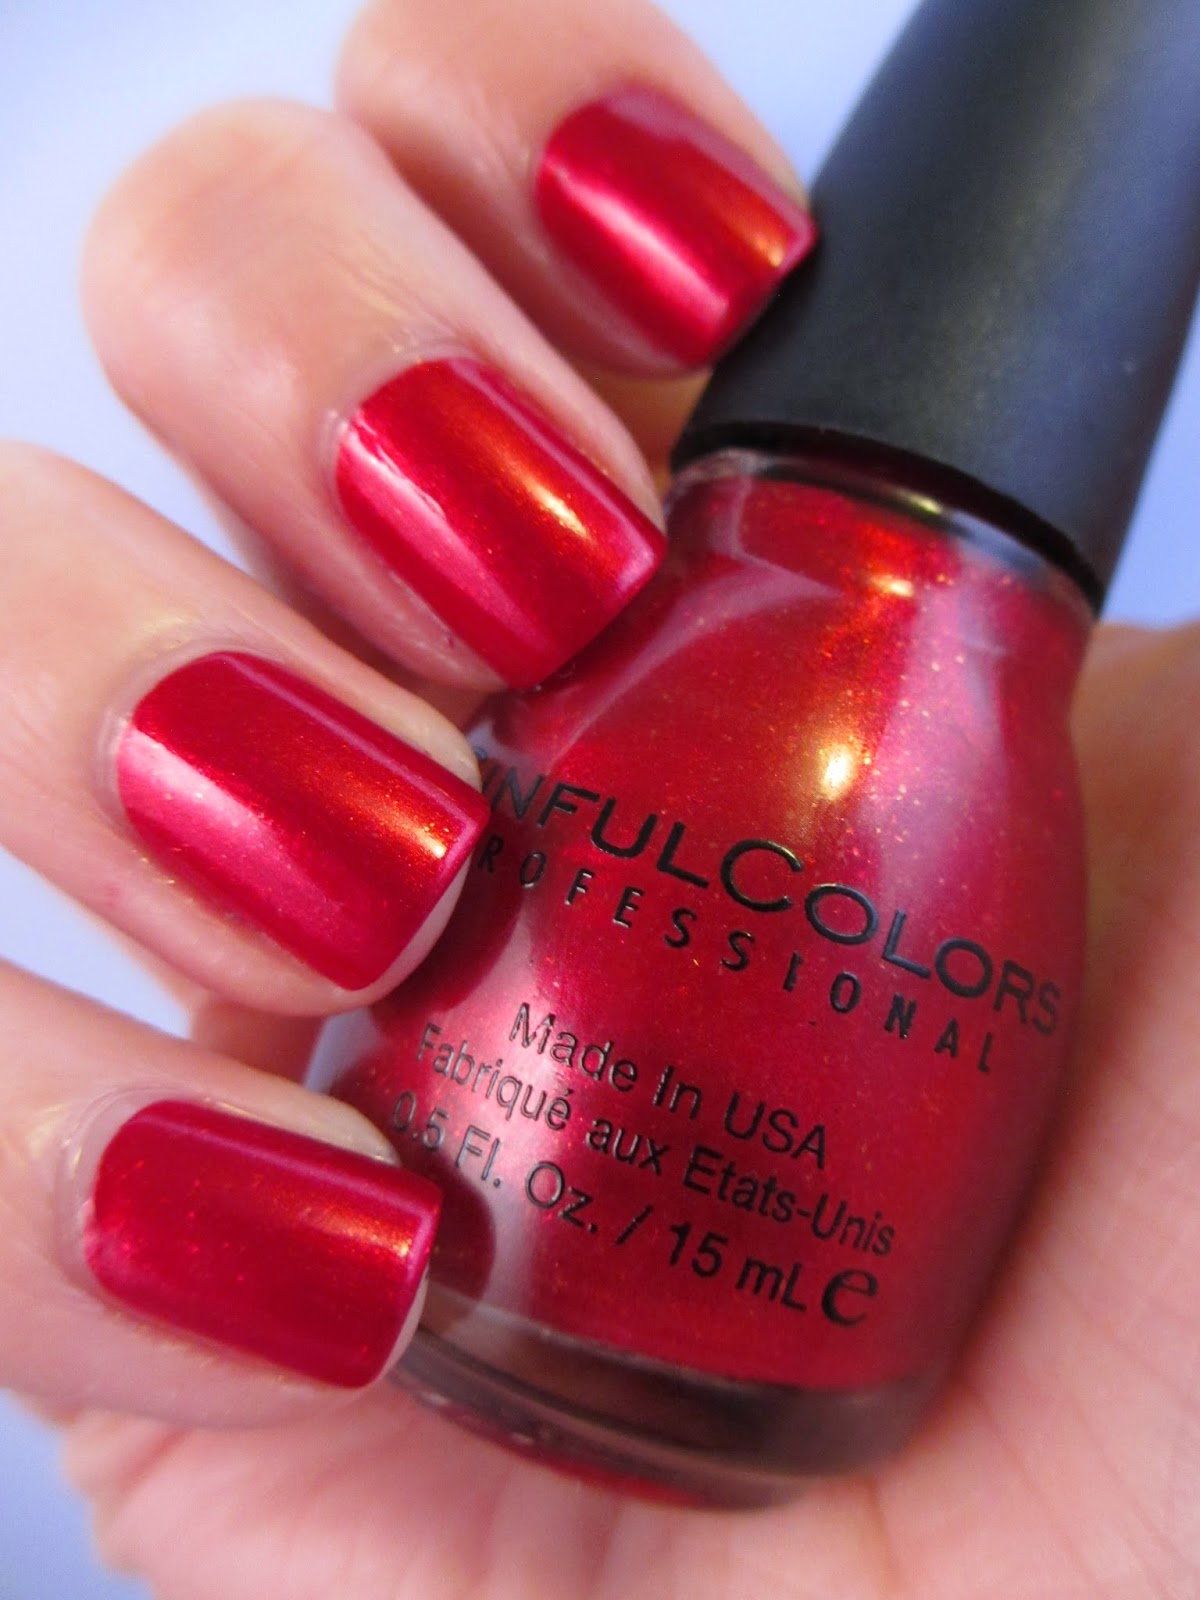 Sinful-colors-red-nail-polish-sugar-sugar